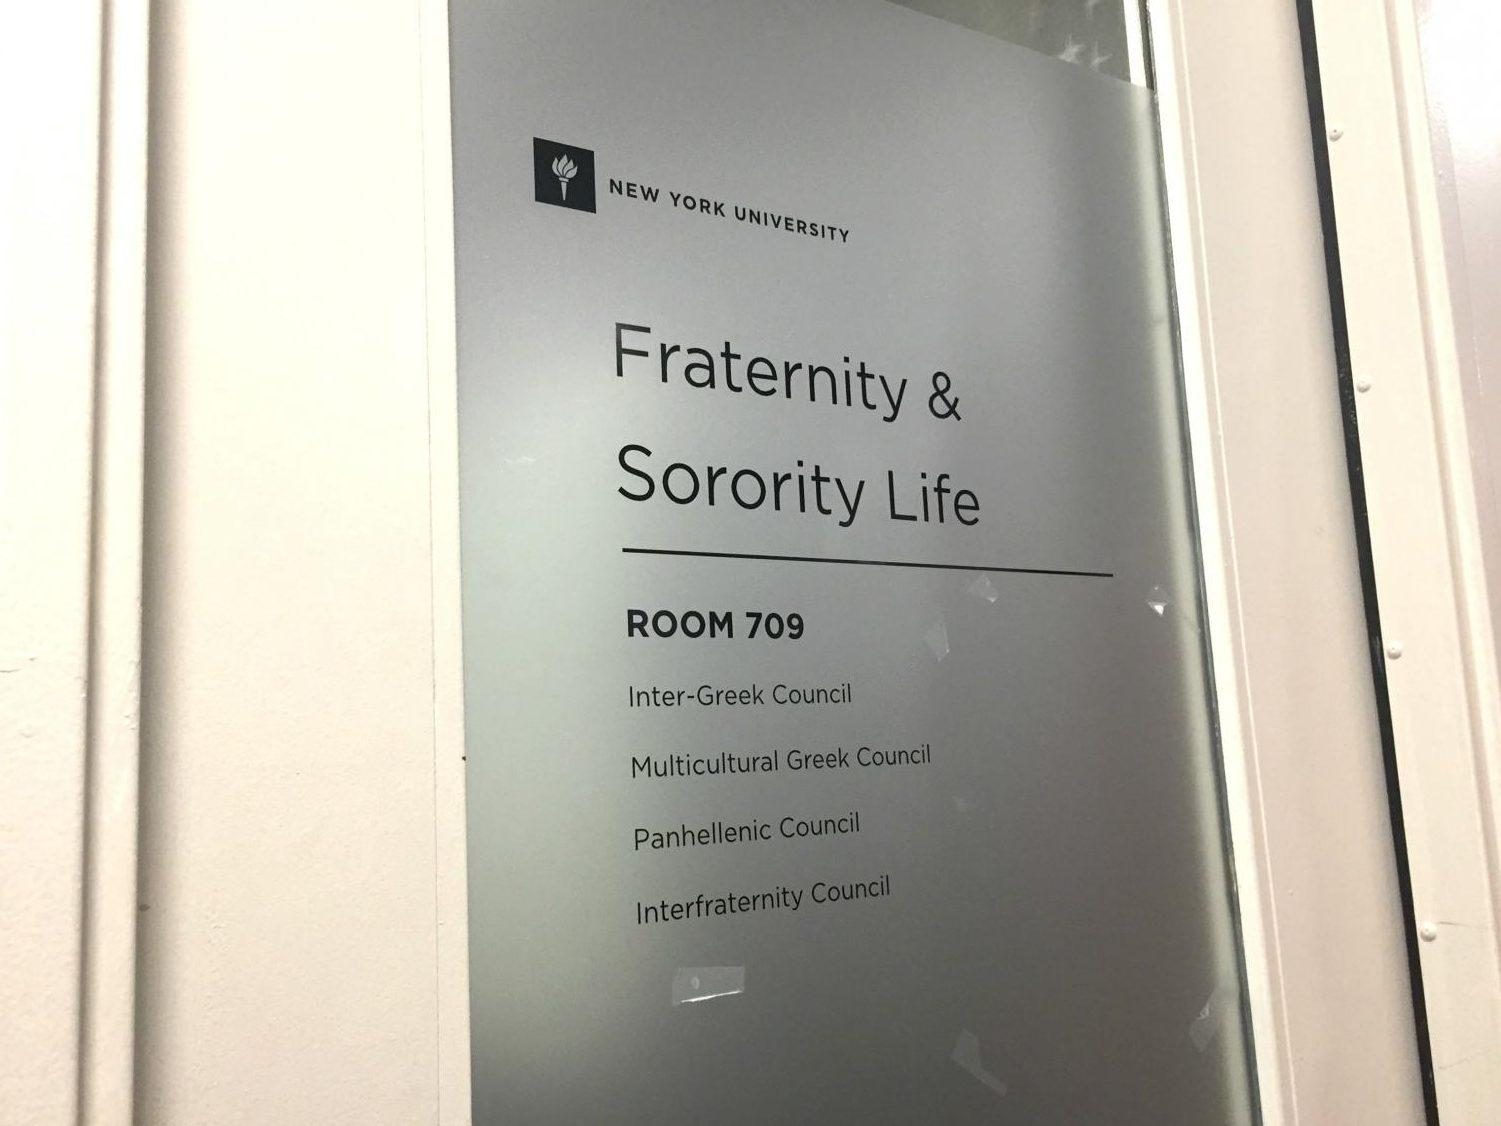 The office of Fraternity and Sorority Life located at the Center for Student Life at NYU.